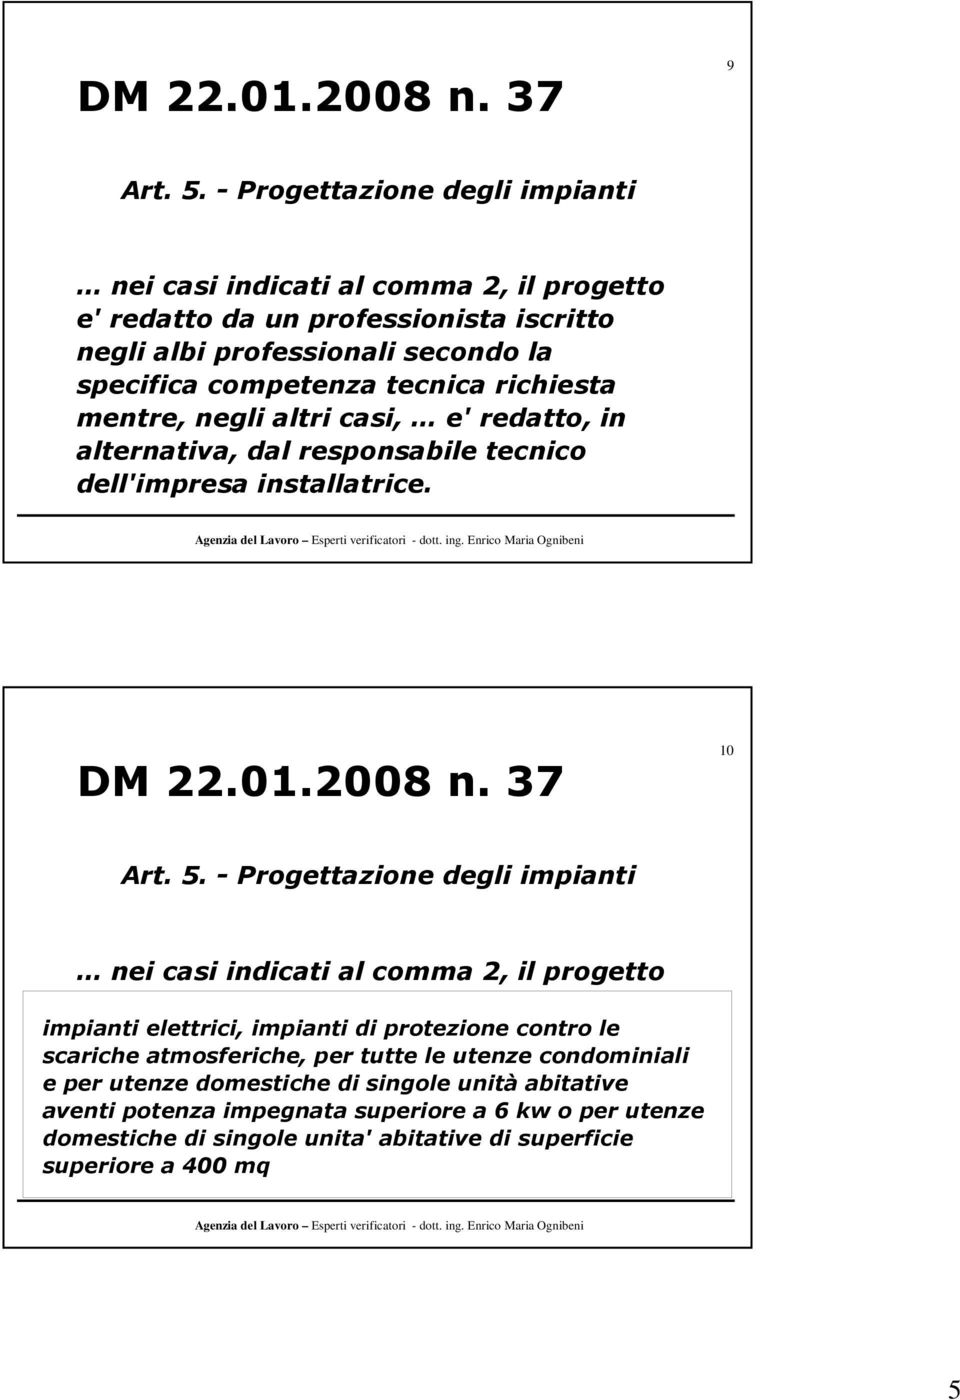 negli altri casi, e' redatto, in alternativa, dal responsabile tecnico dell'impresa installatrice. DM 22.01.2008 n. 37 10 Art. 5.